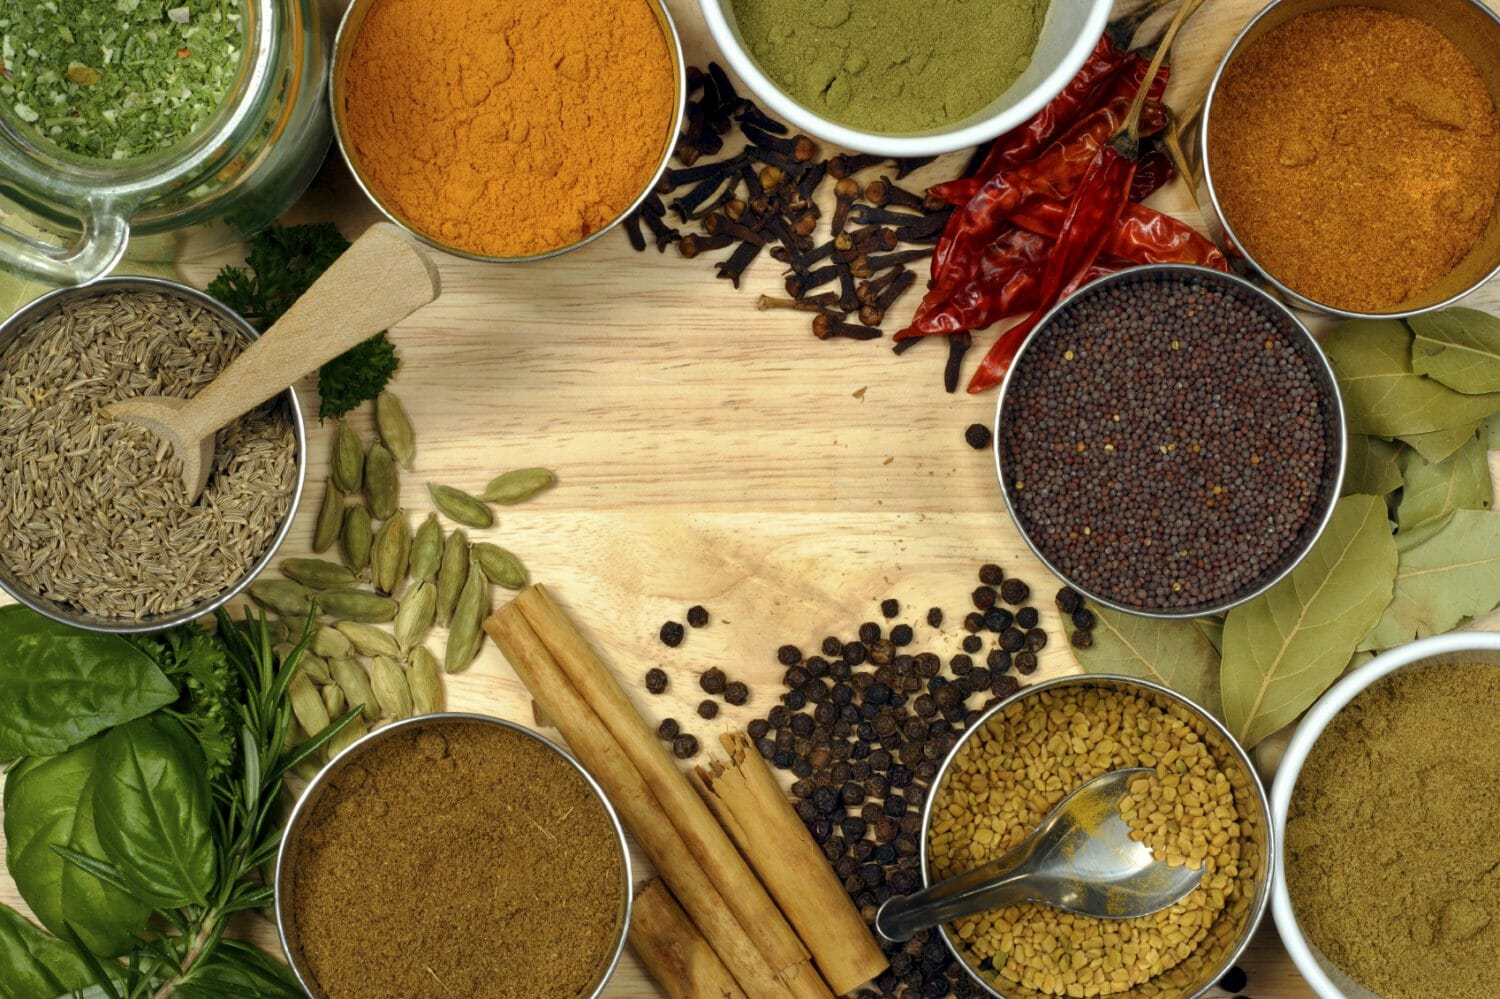 Ayurvedic Cooking Weekend Retreat at the Sivananda Yoga Ranch